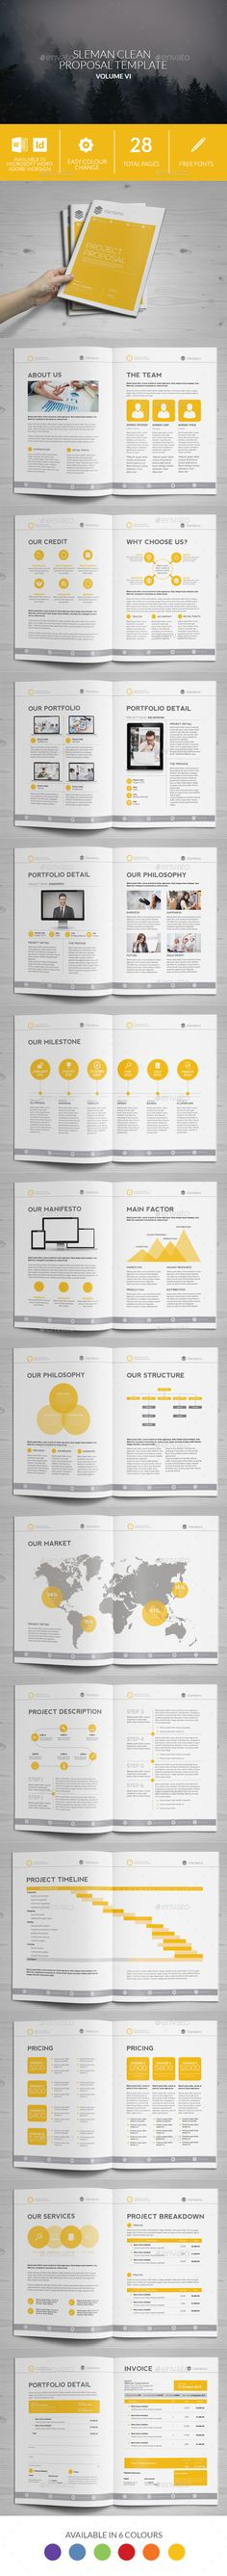 Business Proposal Template III Proposal templates, Business - purchase proposal templates